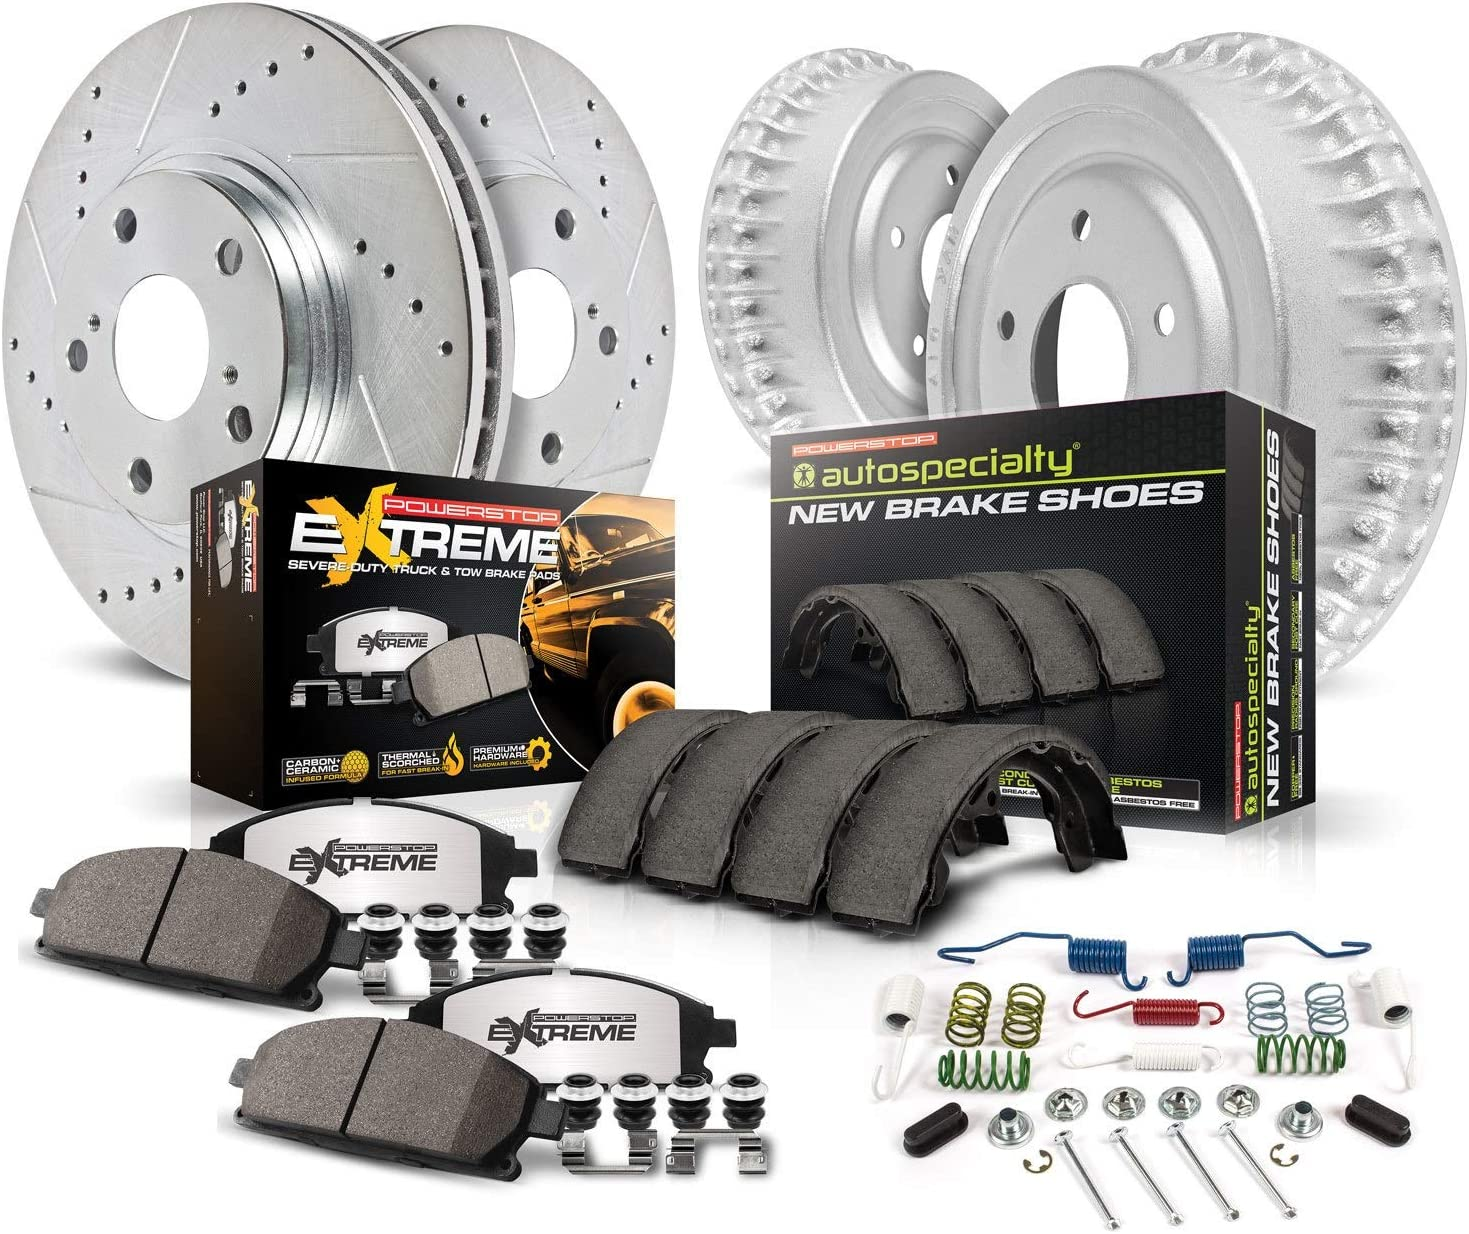 Z36 Truck /& Tow FrontCarbon Fiber Ceramic Brake Pads with Hardware Power Stop Z36-2184